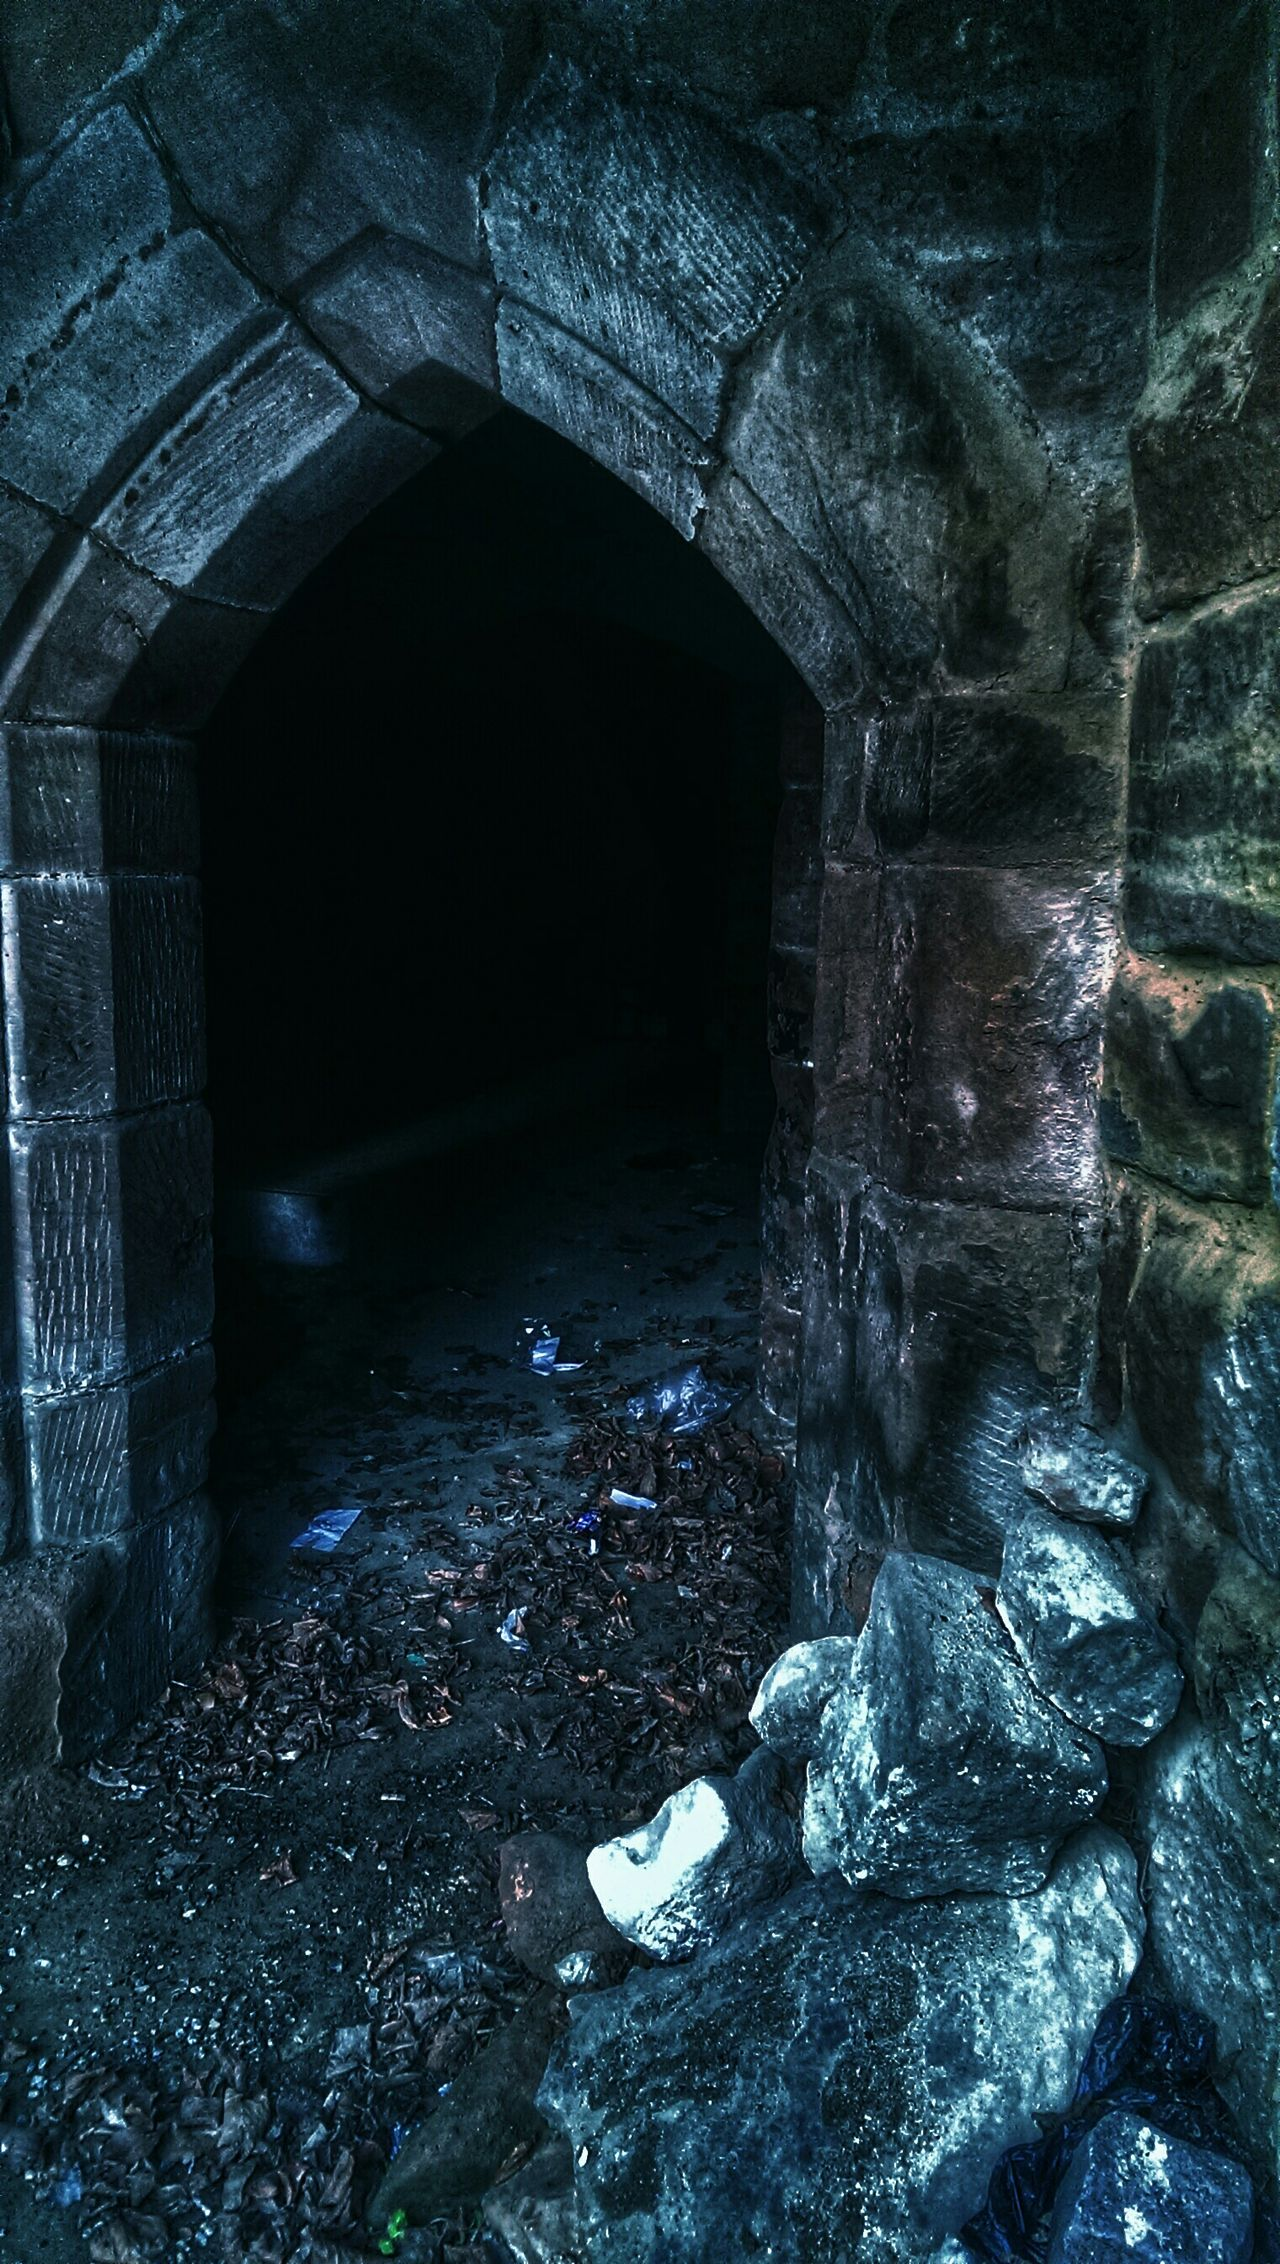 Journey Into The Dark There Something Behind The Door Something In The Darkness Look Into The Darkness  Old Buildings Arch Sandstone Spooky Atmosphere Spirits Within Ghostly